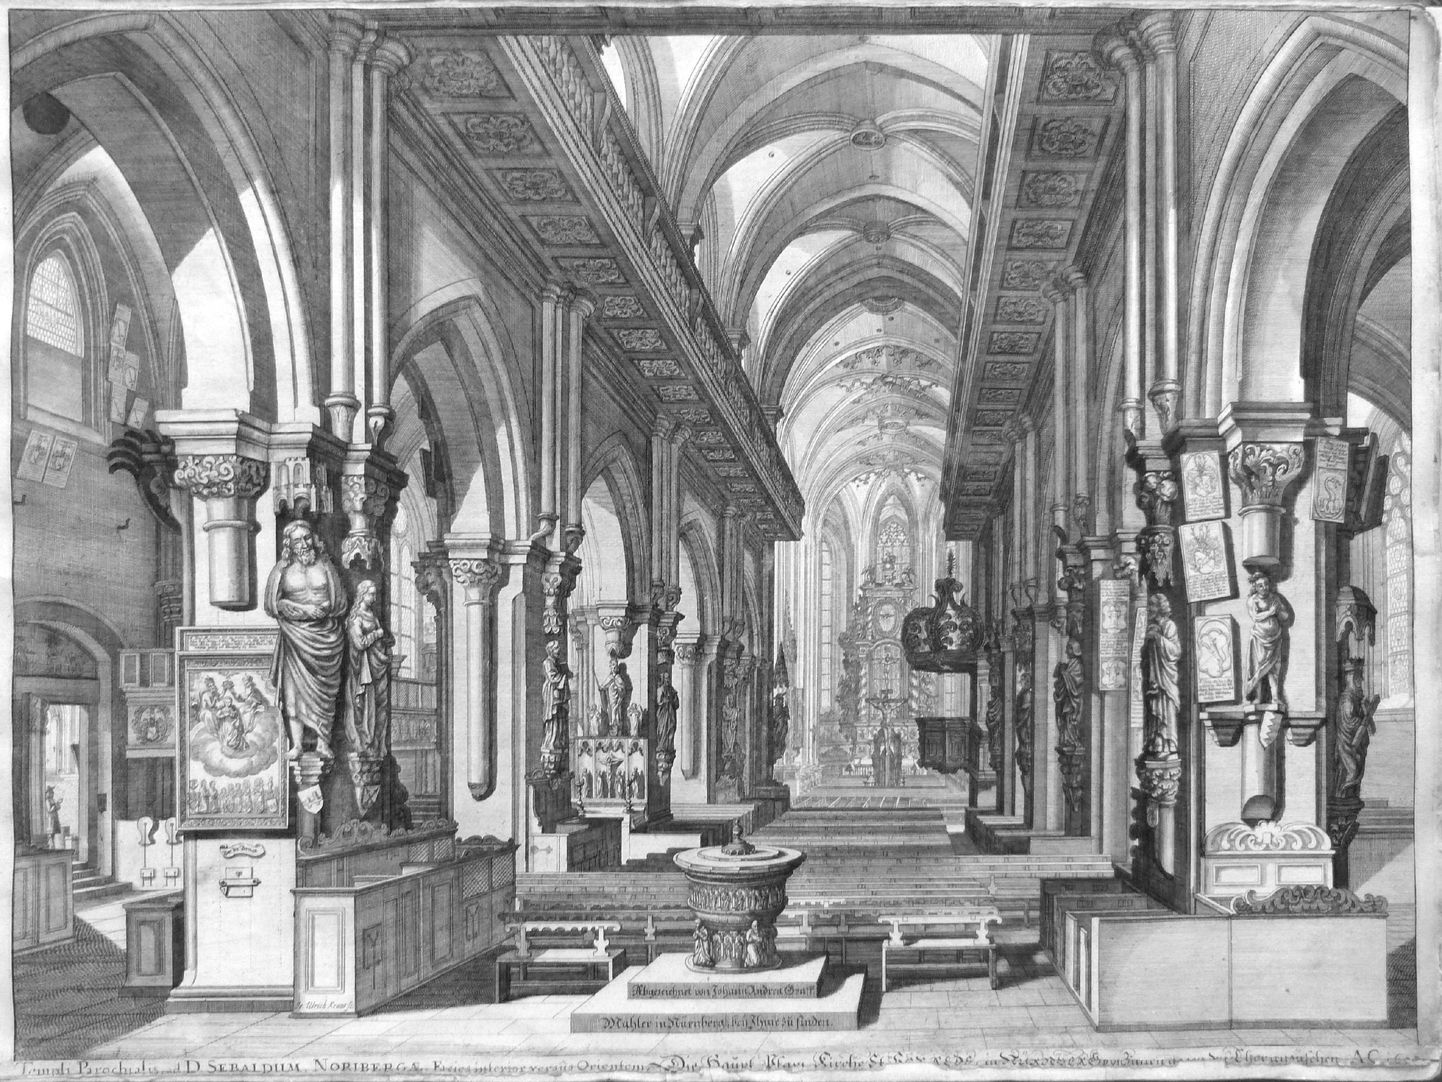 """Urbis Norimbergensis Insigniorum Templorum…"" St. Sebald-Church Interior, view to the east with the Baroque galleries"